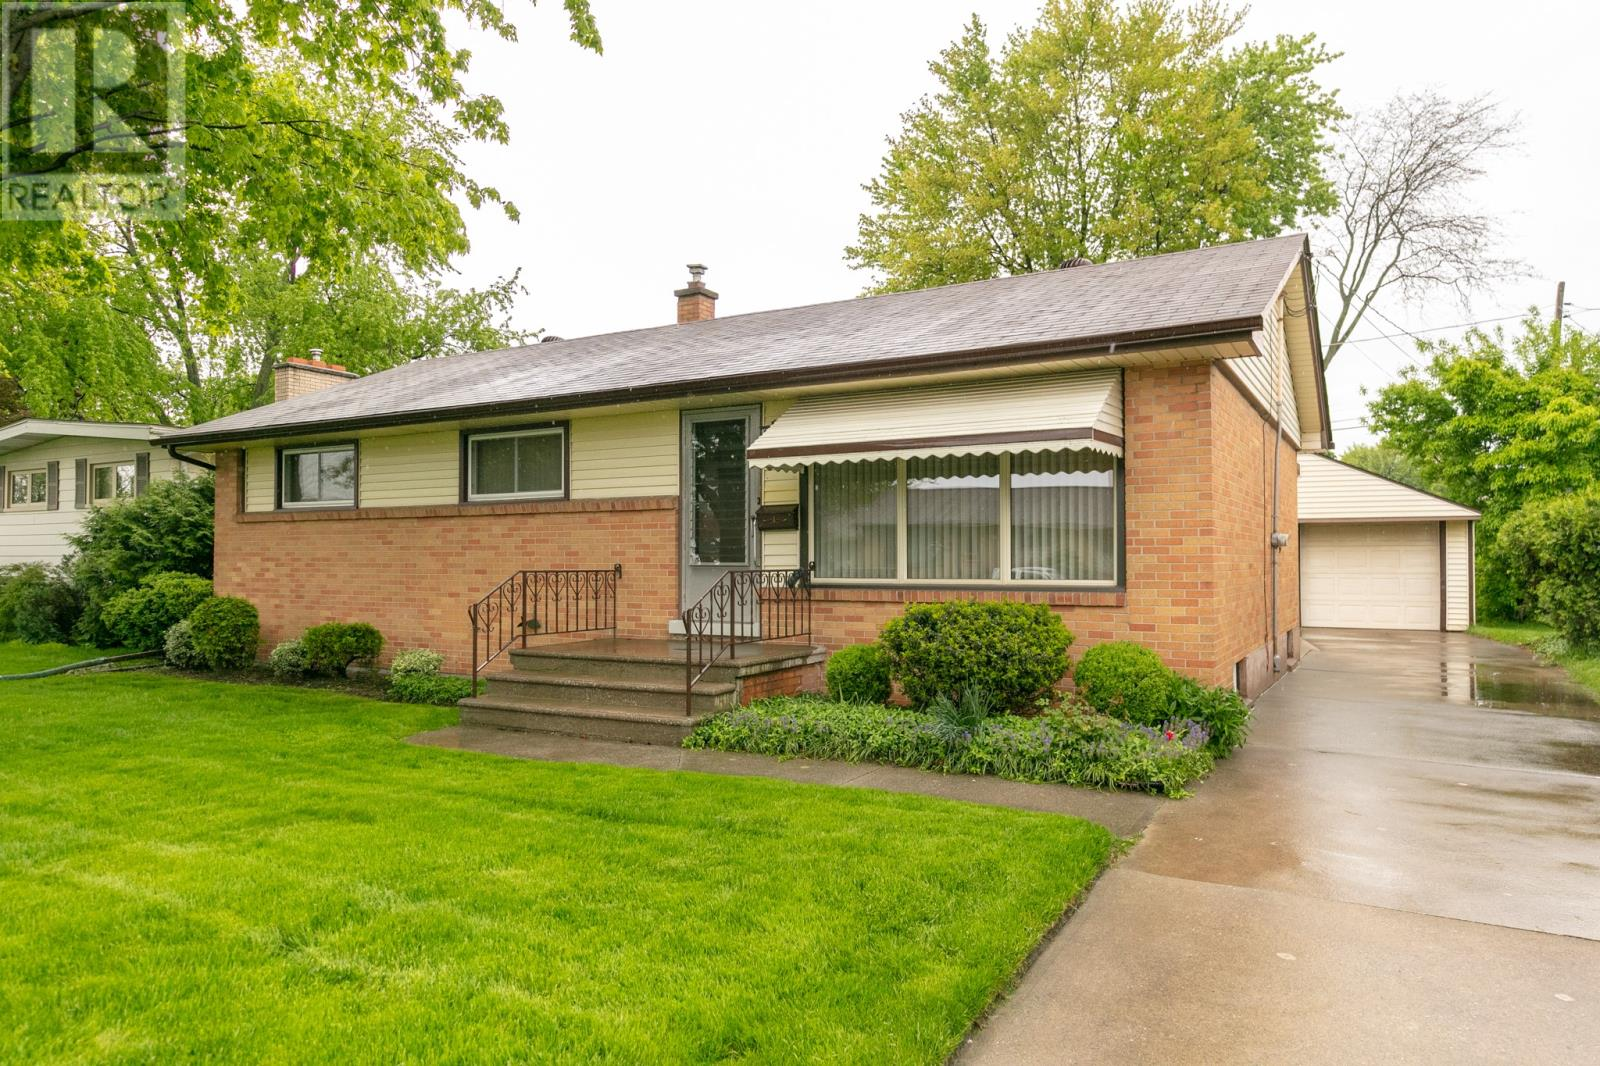 Removed: 1588 Cherrylawn Crescent, Windsor, ON - Removed on 2019-05-31 07:21:09